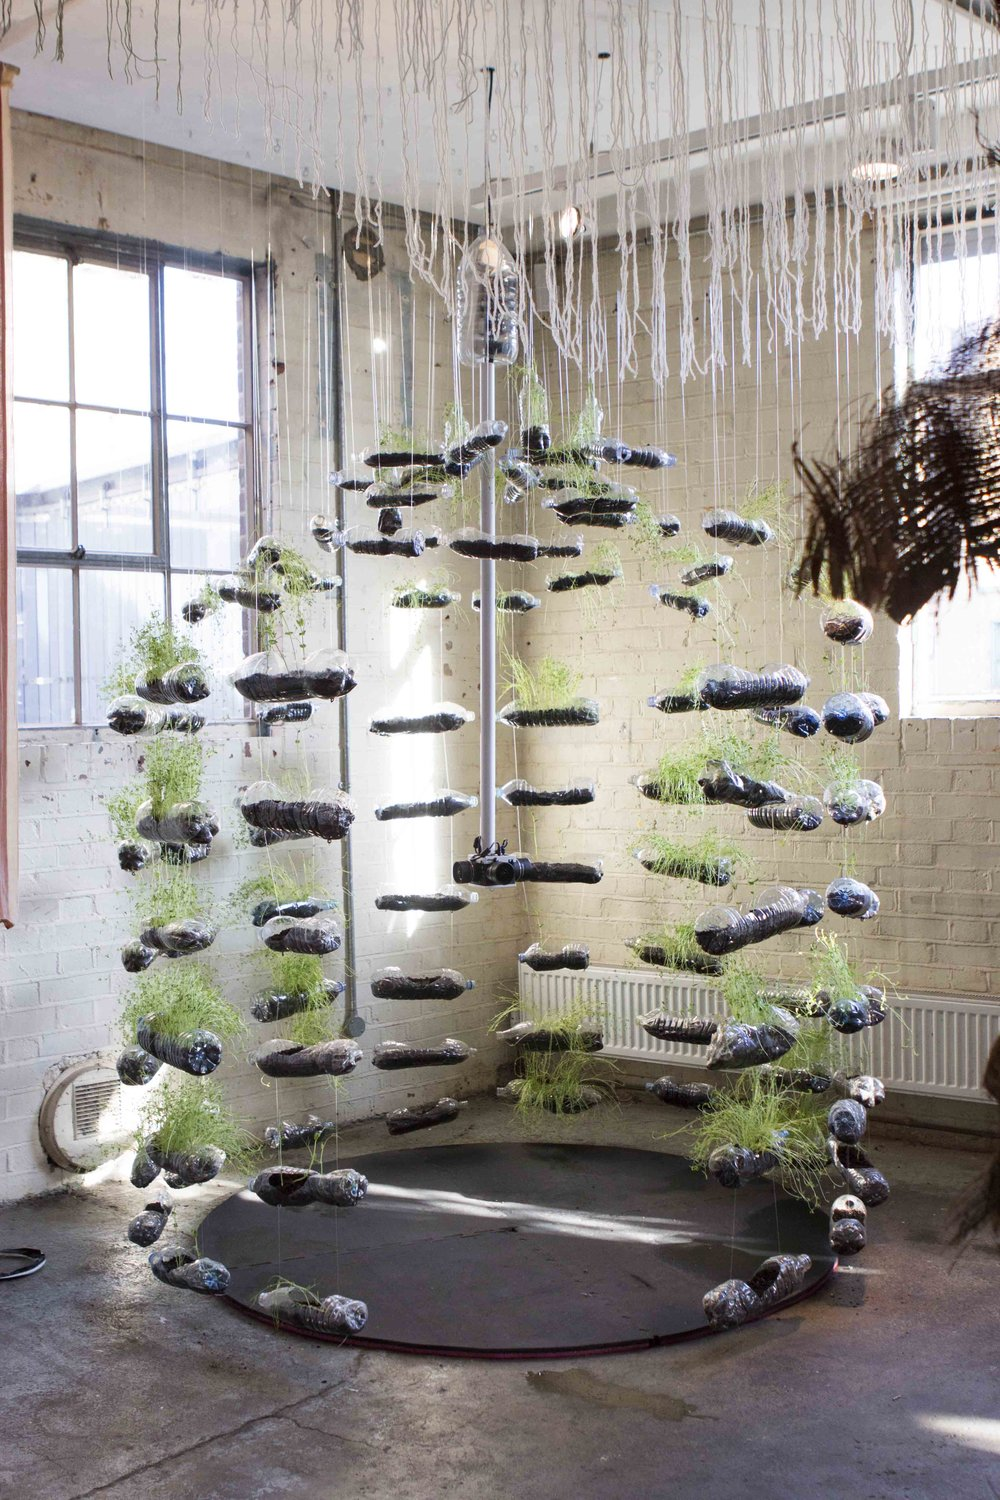 MICRO BEING, Tasha Aulls,  2018. Living plant installation.  Tropic  0 8ºN